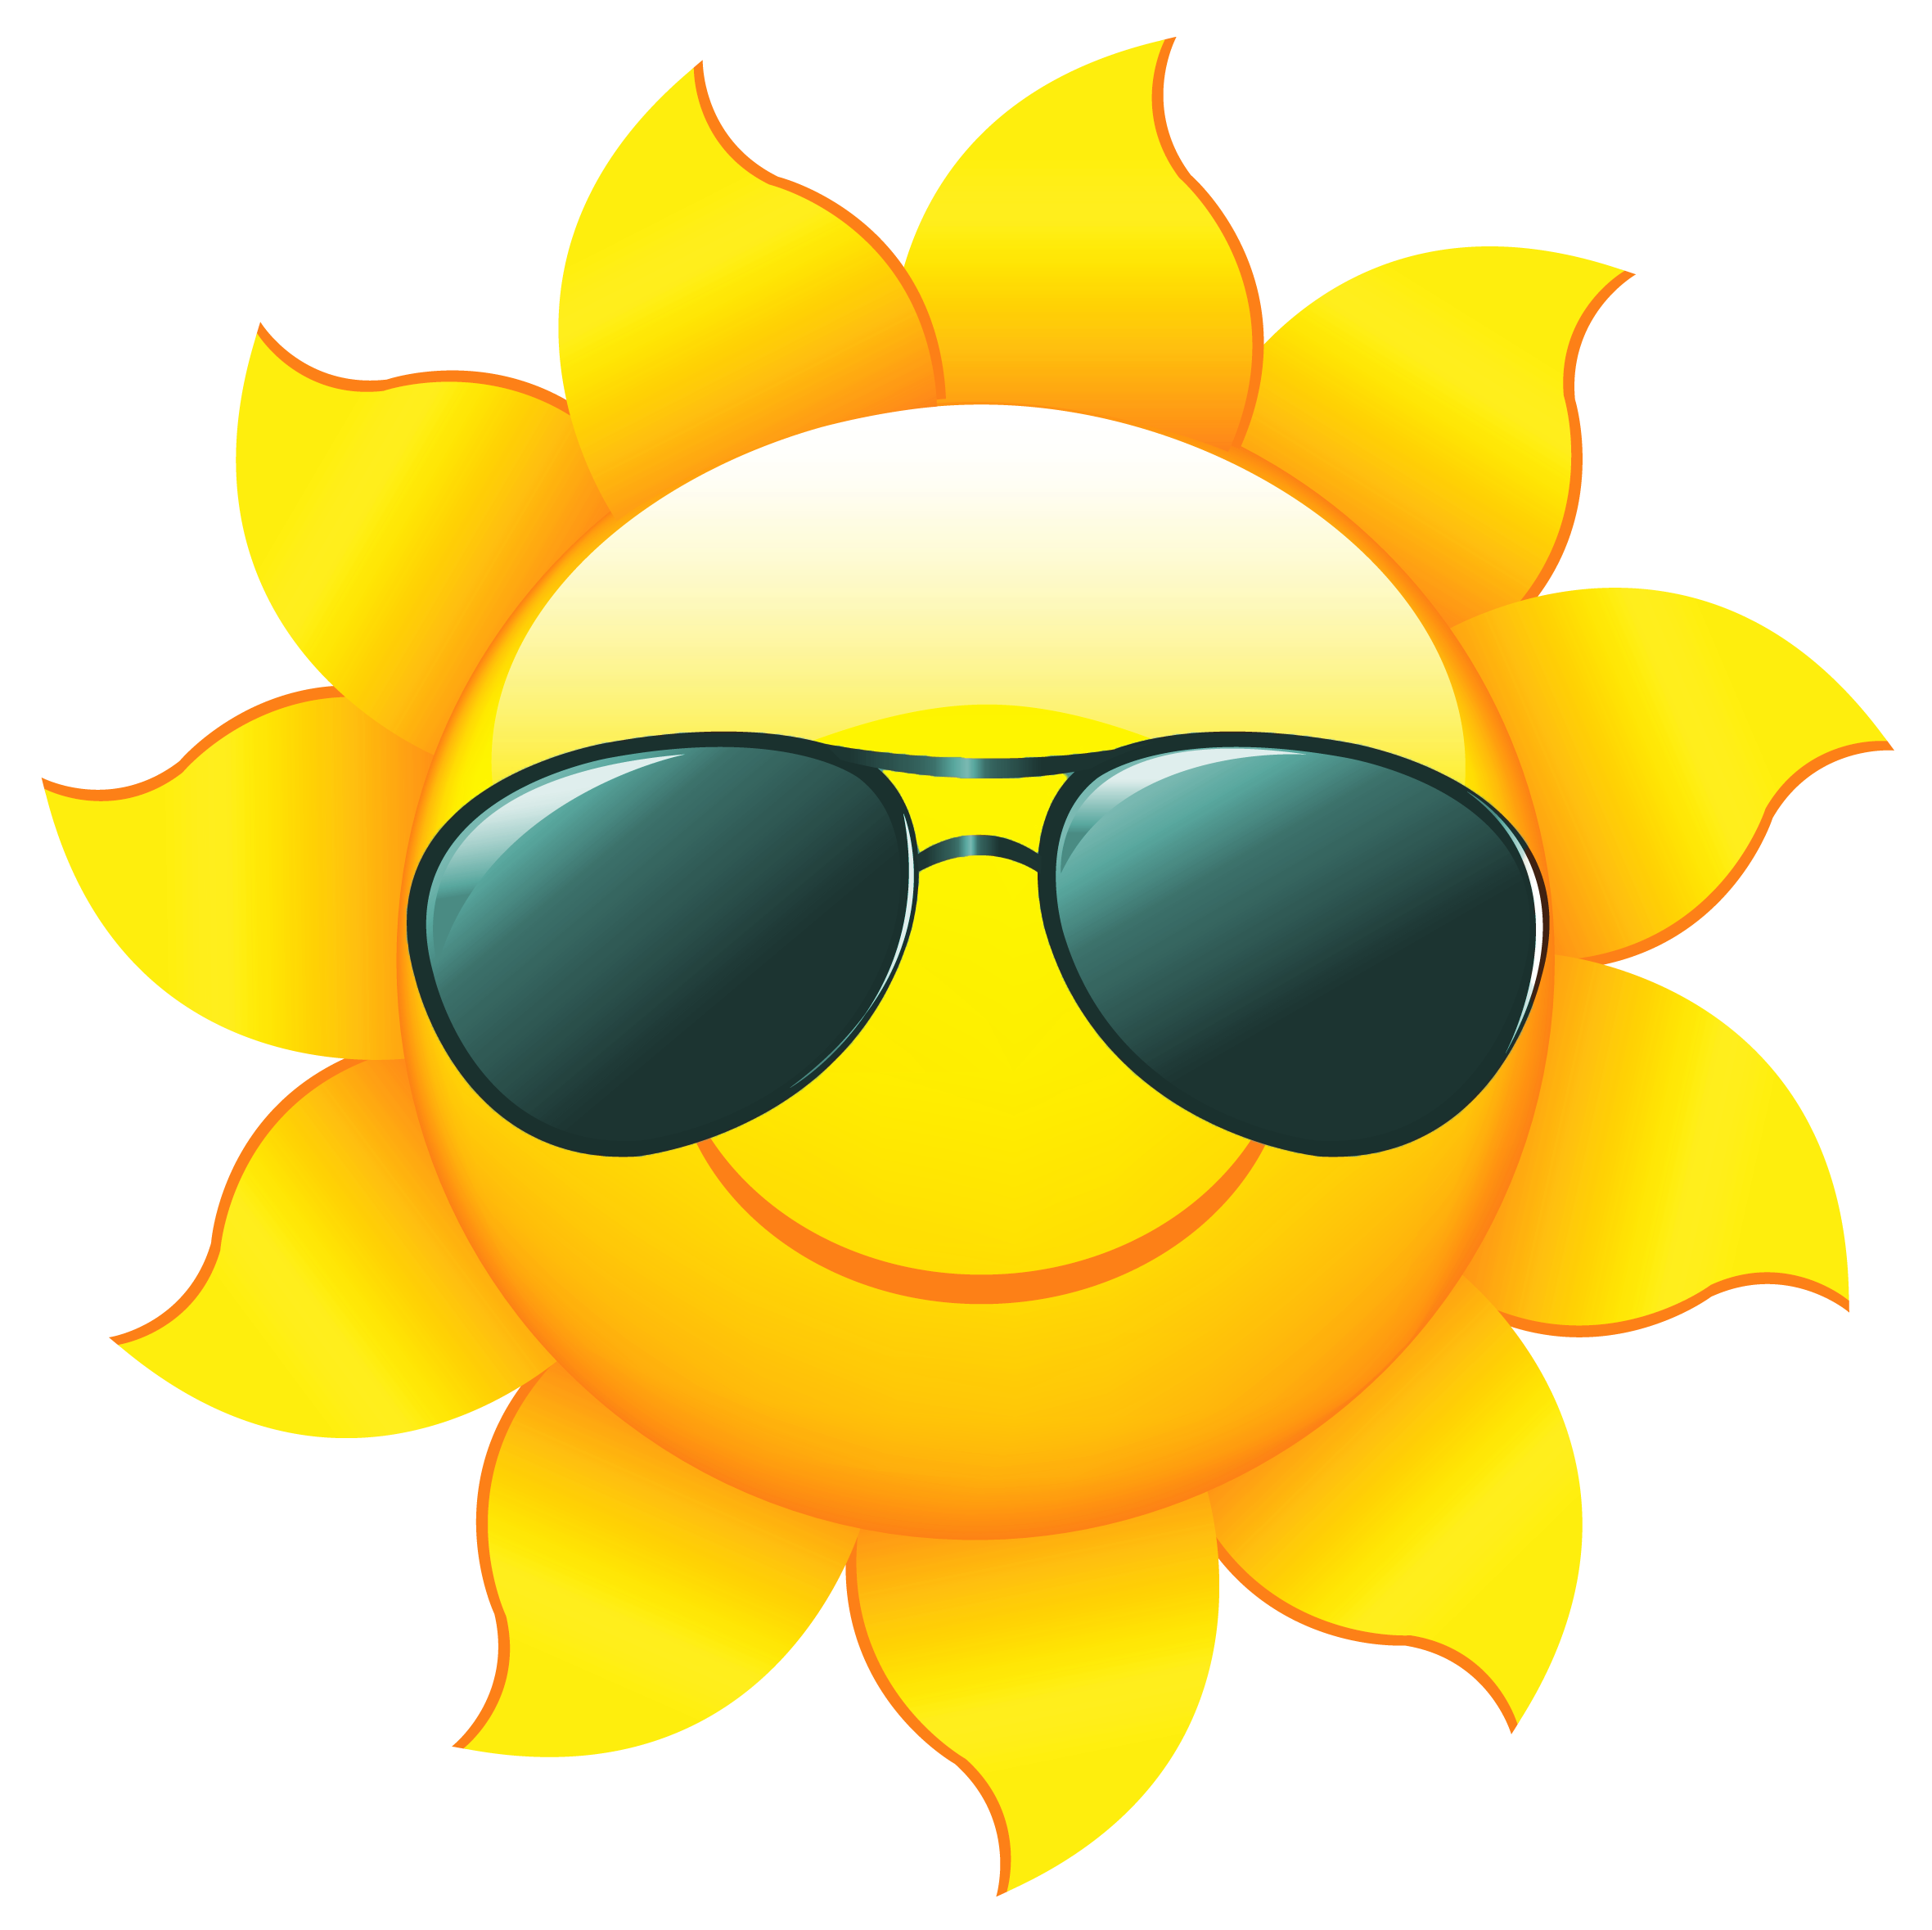 Mean sun man clipart jpg freeuse download Community Events Calendar 6.30-7.6.2018 - Town of Bedford jpg freeuse download